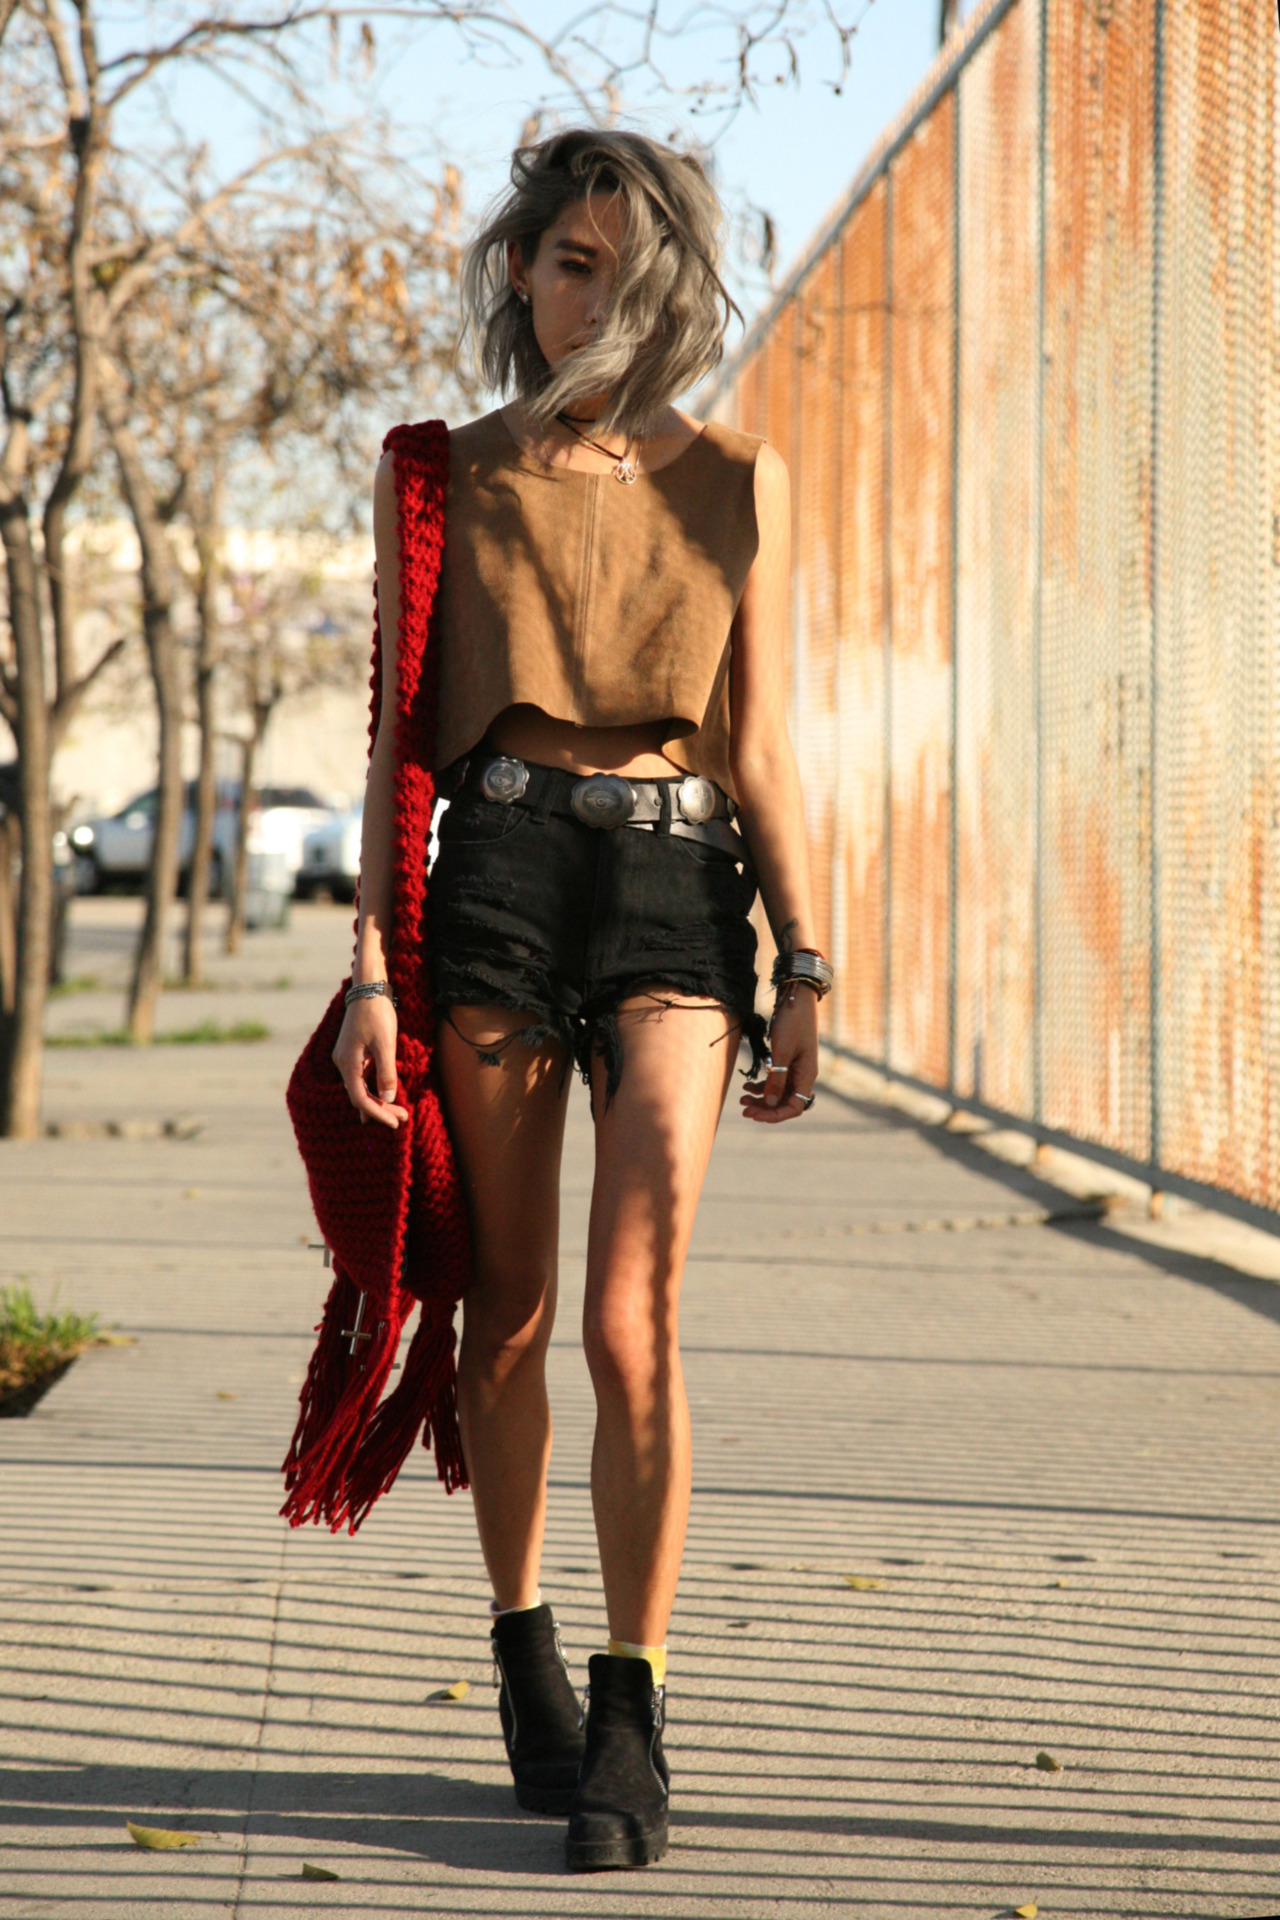 AGAIN Johhny suede crop HERE // UNIF Guess What shorts HERE or HERE orHERE//UNIF concho belt //UNIF Relic Bag HERE //Vintage boots // Tiedye socks from Tokyo UNIF Guess What shorts (image: christeric)